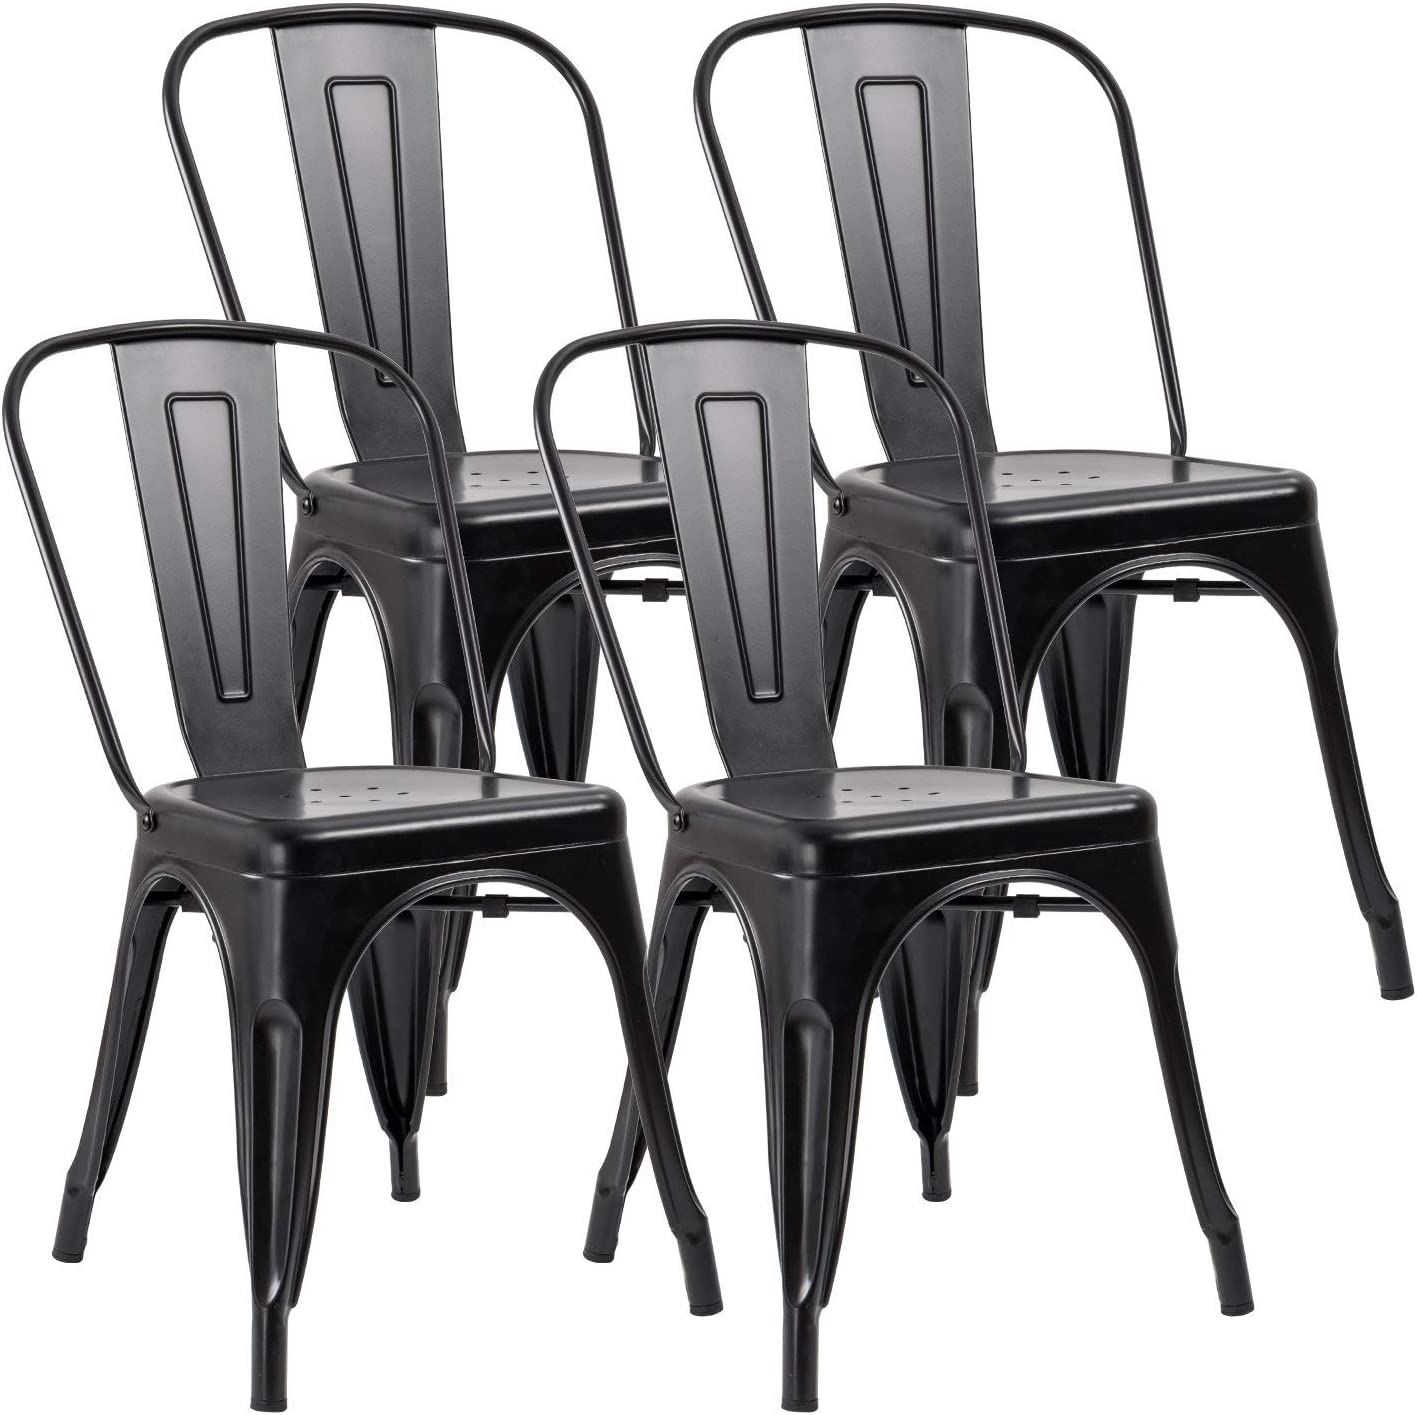 JUMMICO Metal Dining Chair Stackable Indoor-Outdoor Industrial Vintage  Chairs Bistro Kitchen Cafe Side Chairs with Back Set of 10 (Black)